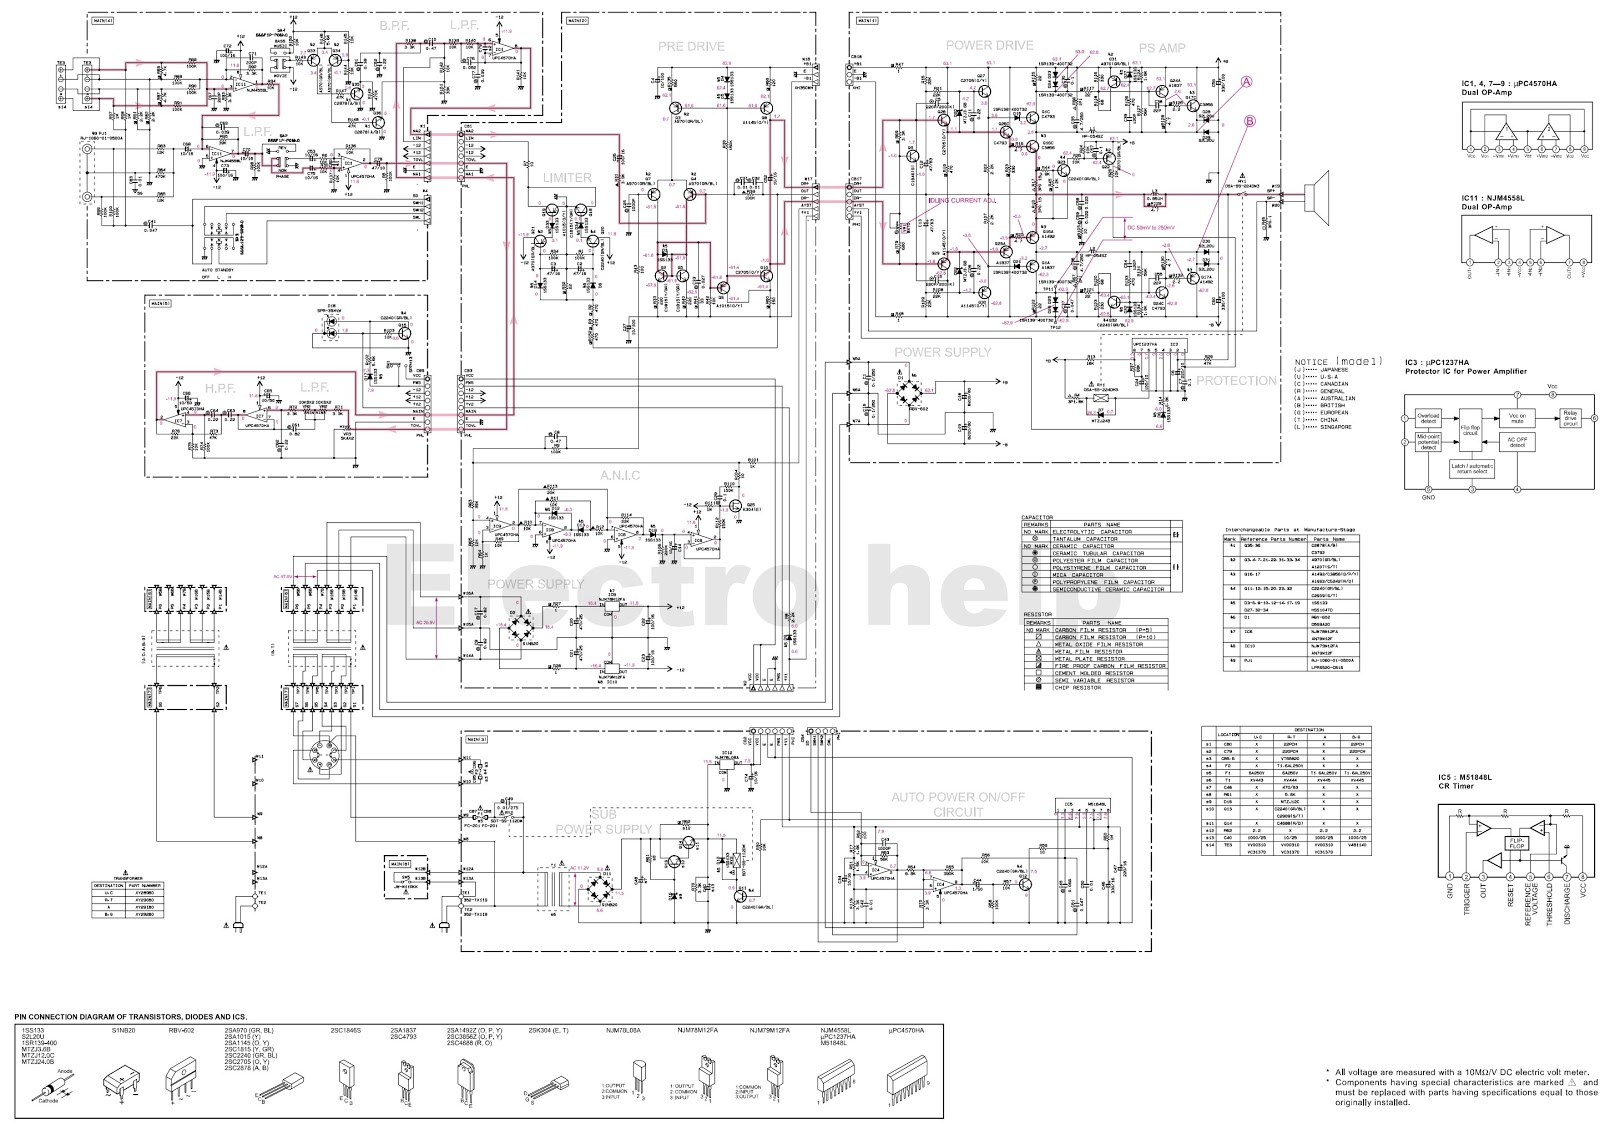 schematic yamaha yst sw320 subwoofer circuit diagram adjustments yamaha schematic diagram at eliteediting.co